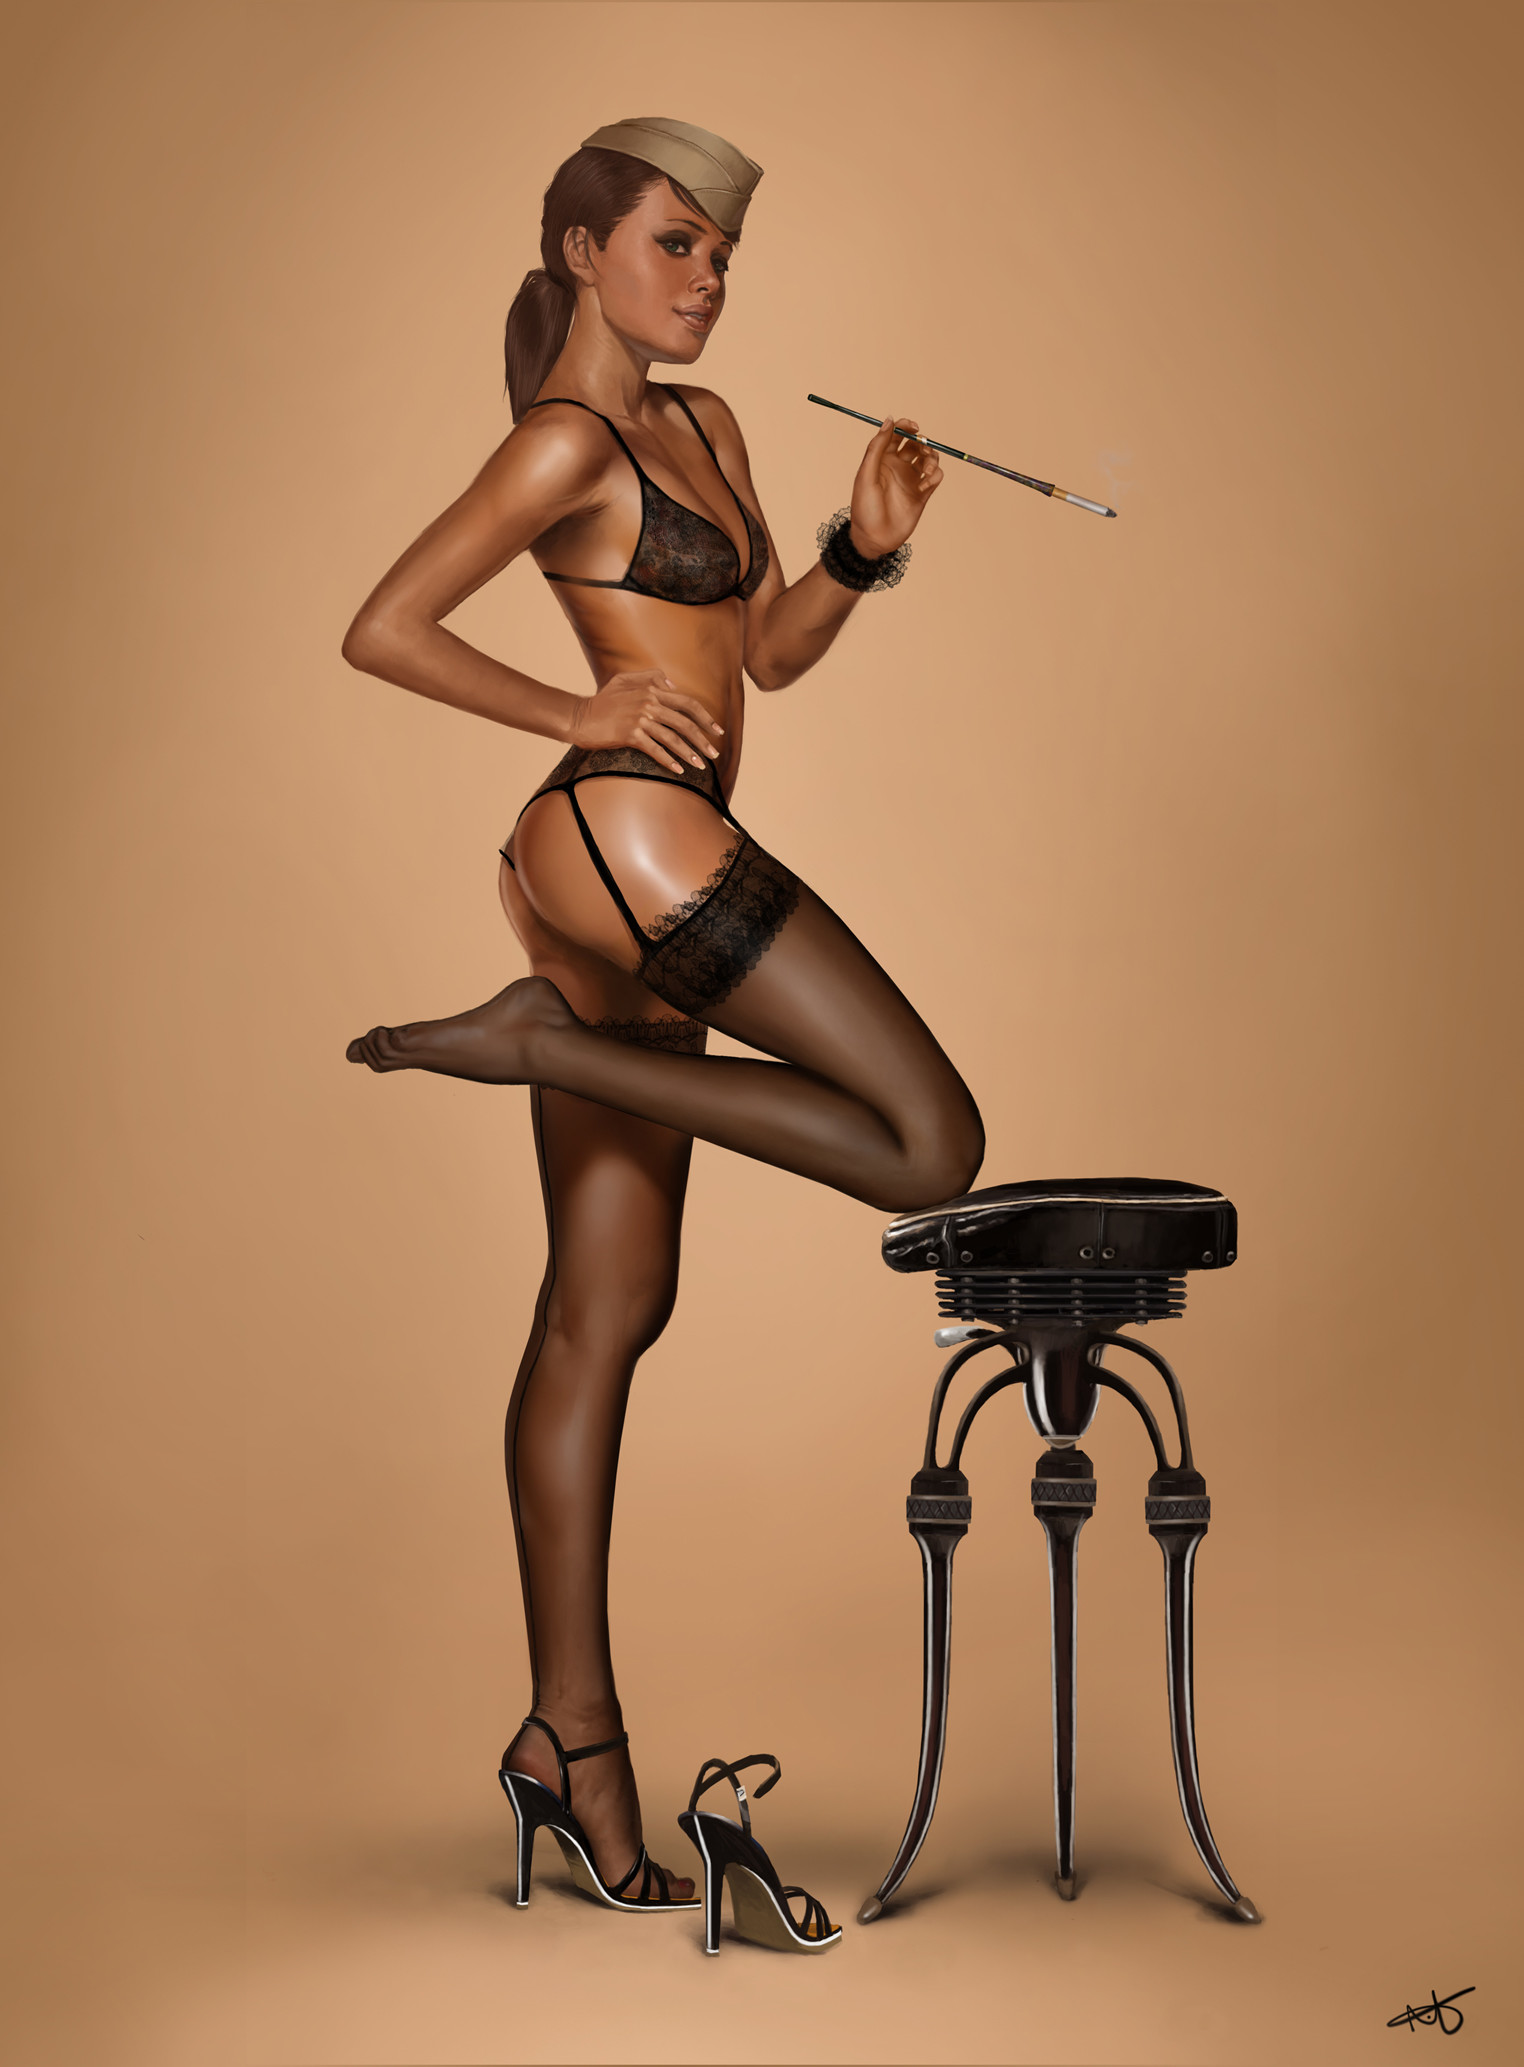 1524x2067 Absolutely Glamorous Digital Pin-up Inspiration | Military pins, Military  and Girls